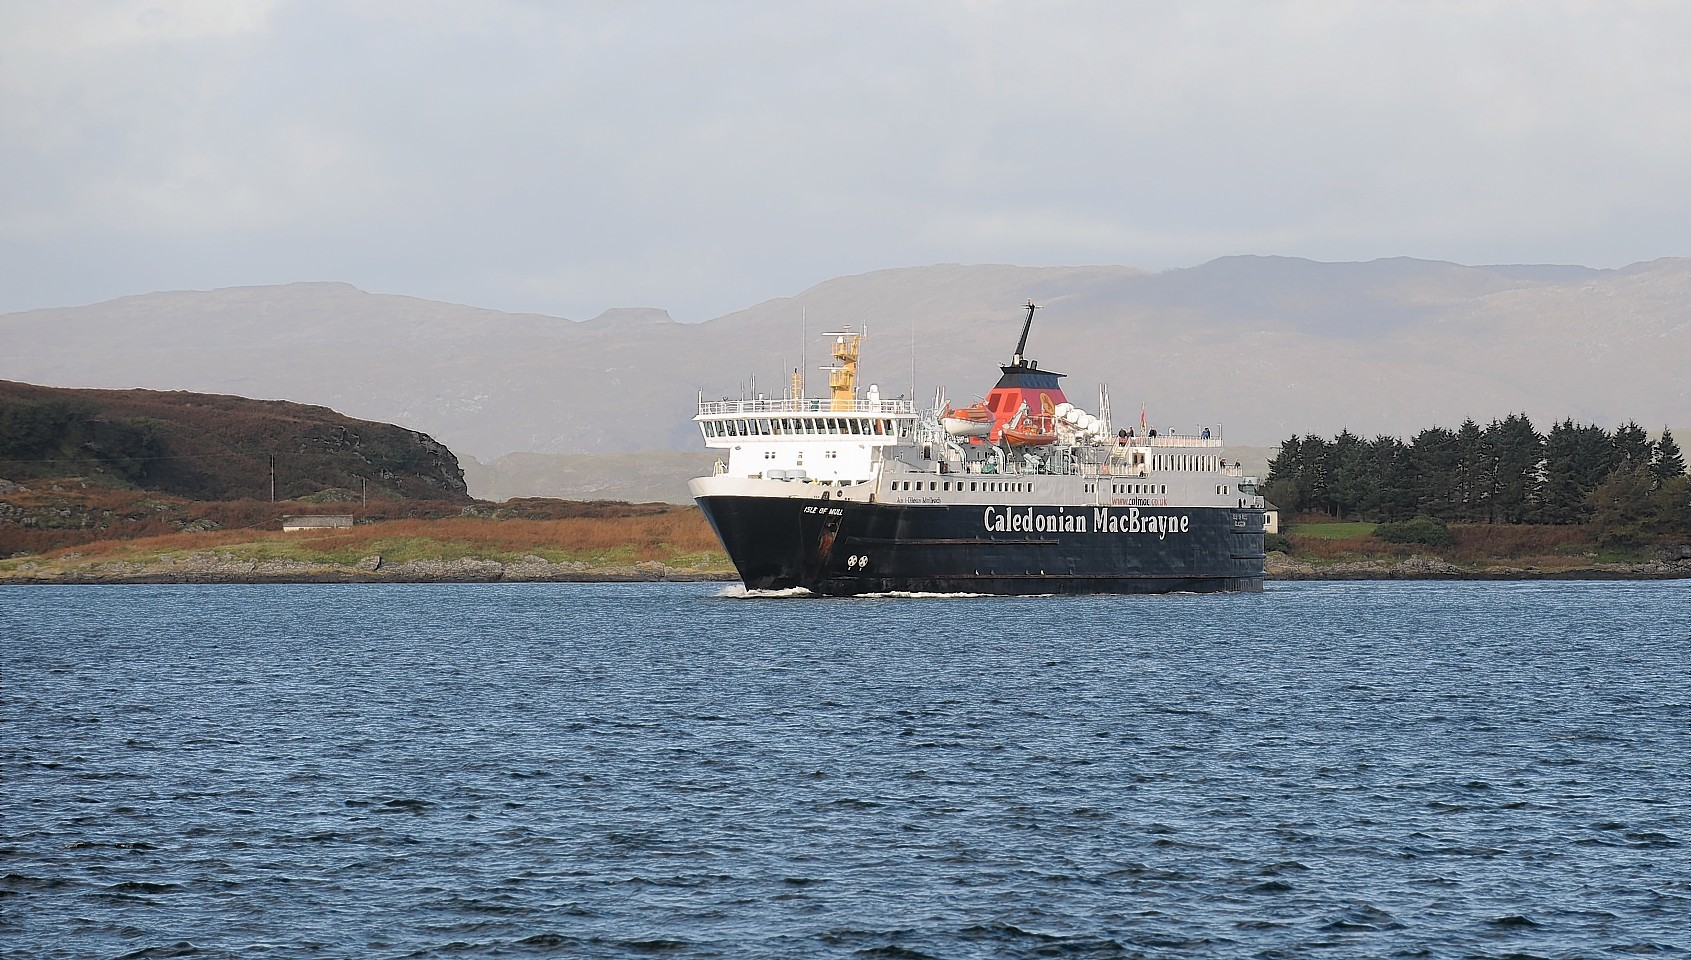 Passengers on the Isle of Mull ferry will be treated to a special performance.